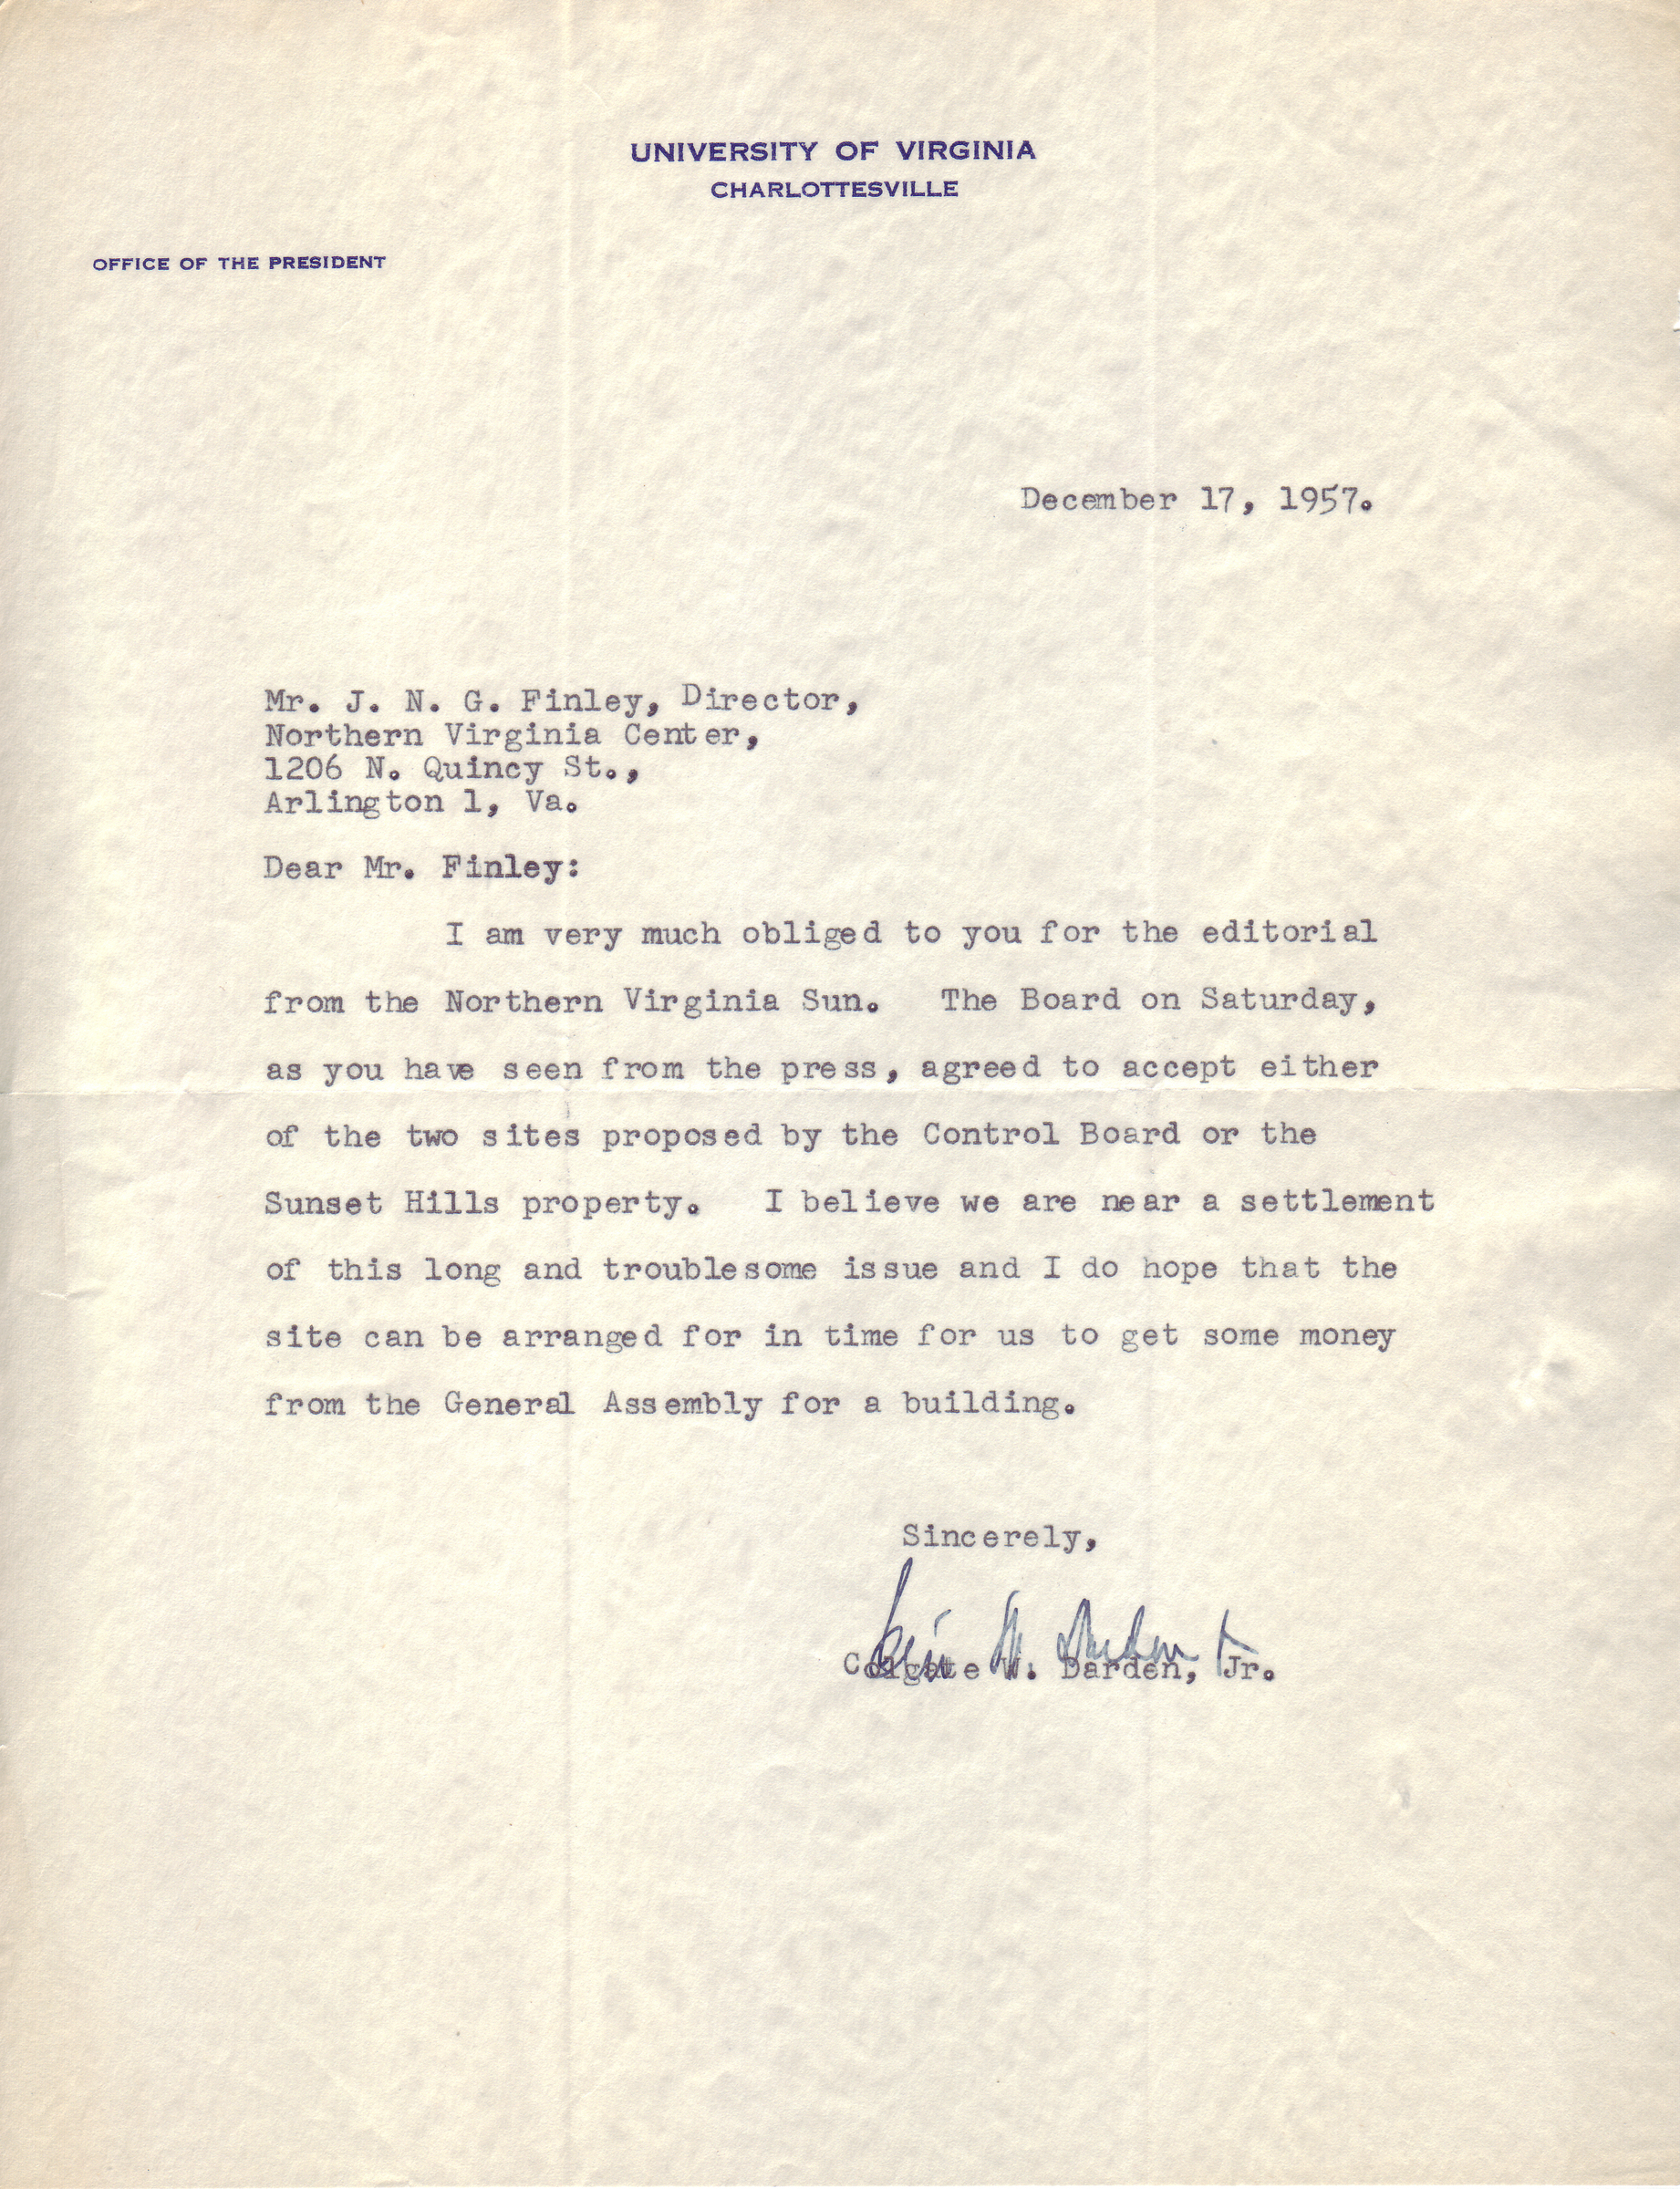 Colgate W. Darden, Jr. to J.N.G. Finley, December 17, 1957.